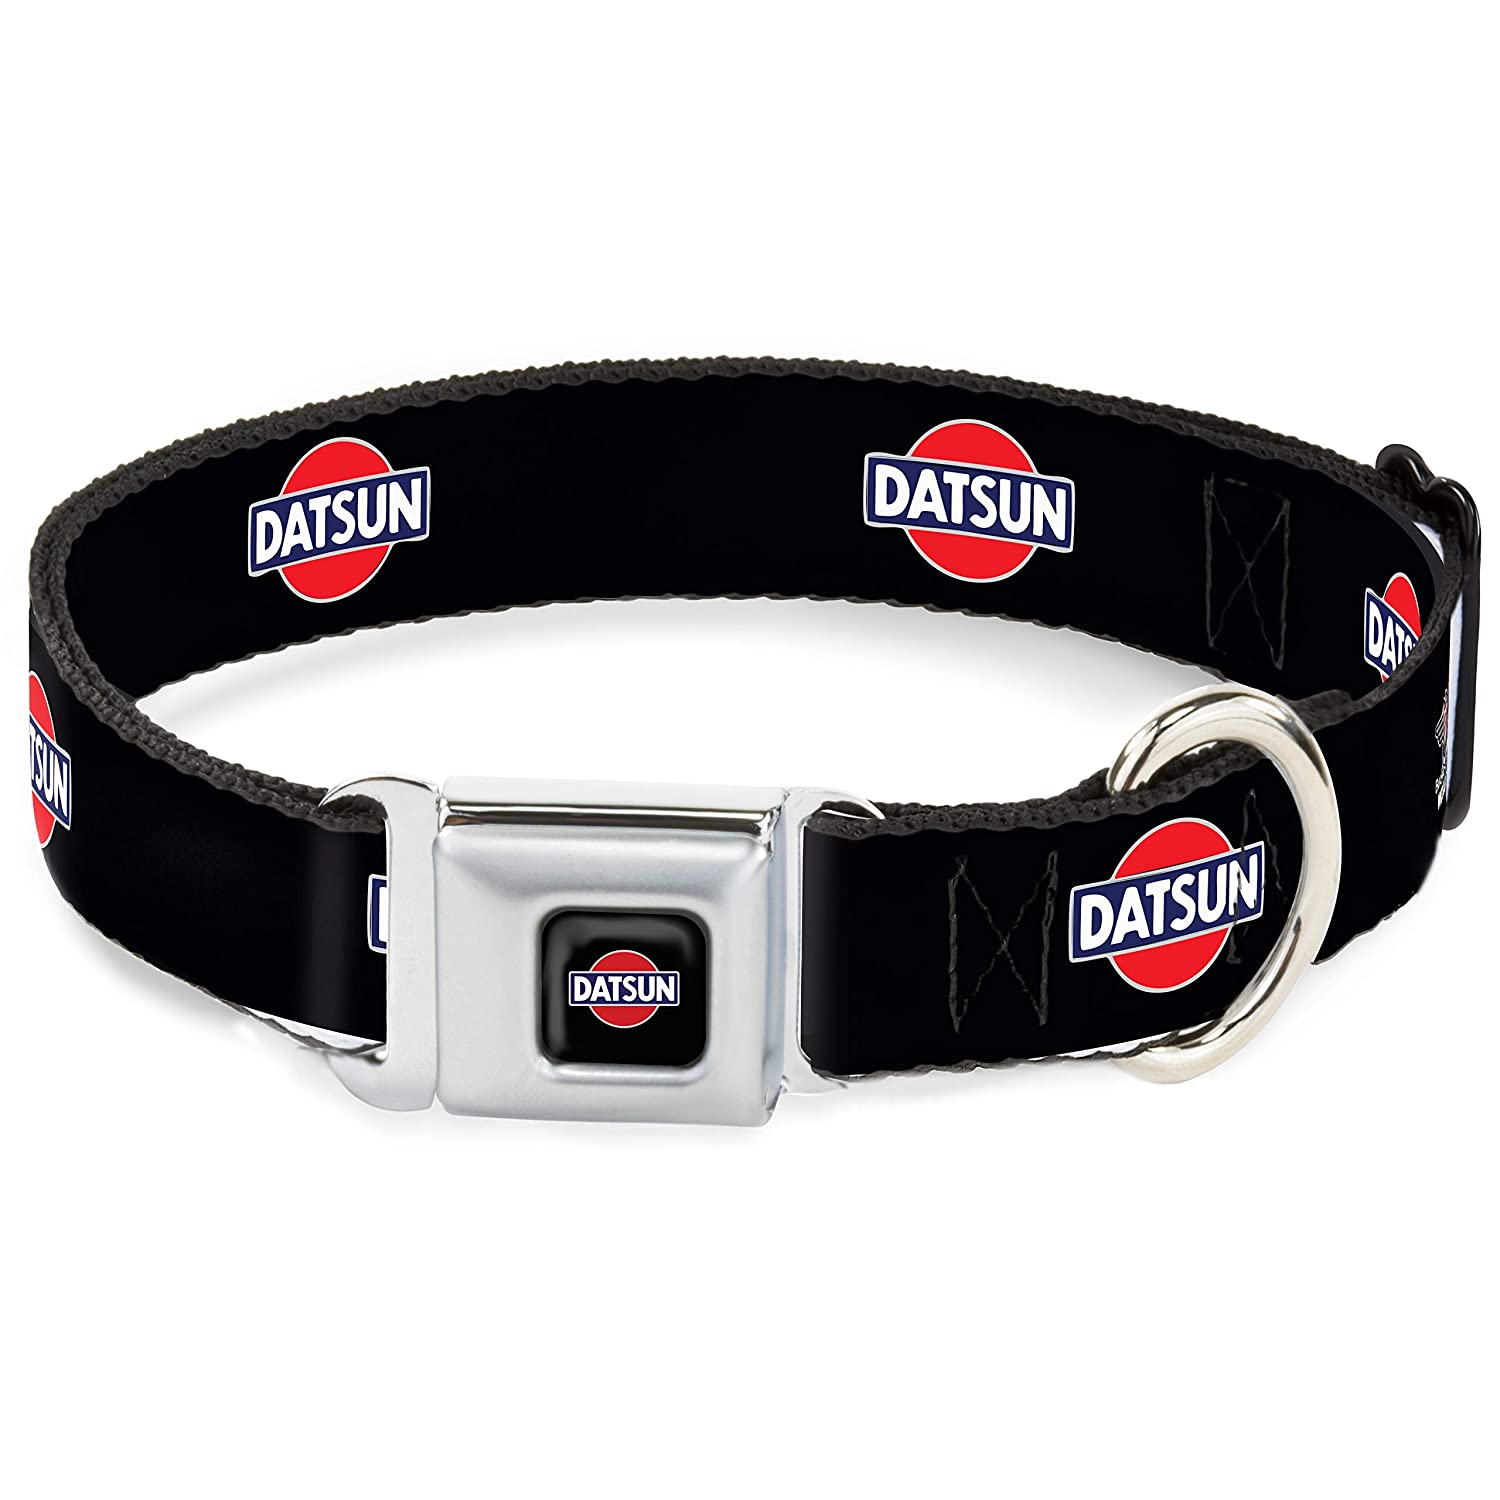 Classic Datsun Logo Black Red bluee White 1.5\ Classic Datsun Logo Black Red bluee White 1.5\ Buckle-Down DC-WDA001-WS Dog Collar Seatbelt Buckle, Classic Datsun Logo Black Red bluee White, 1.5  by 13-18